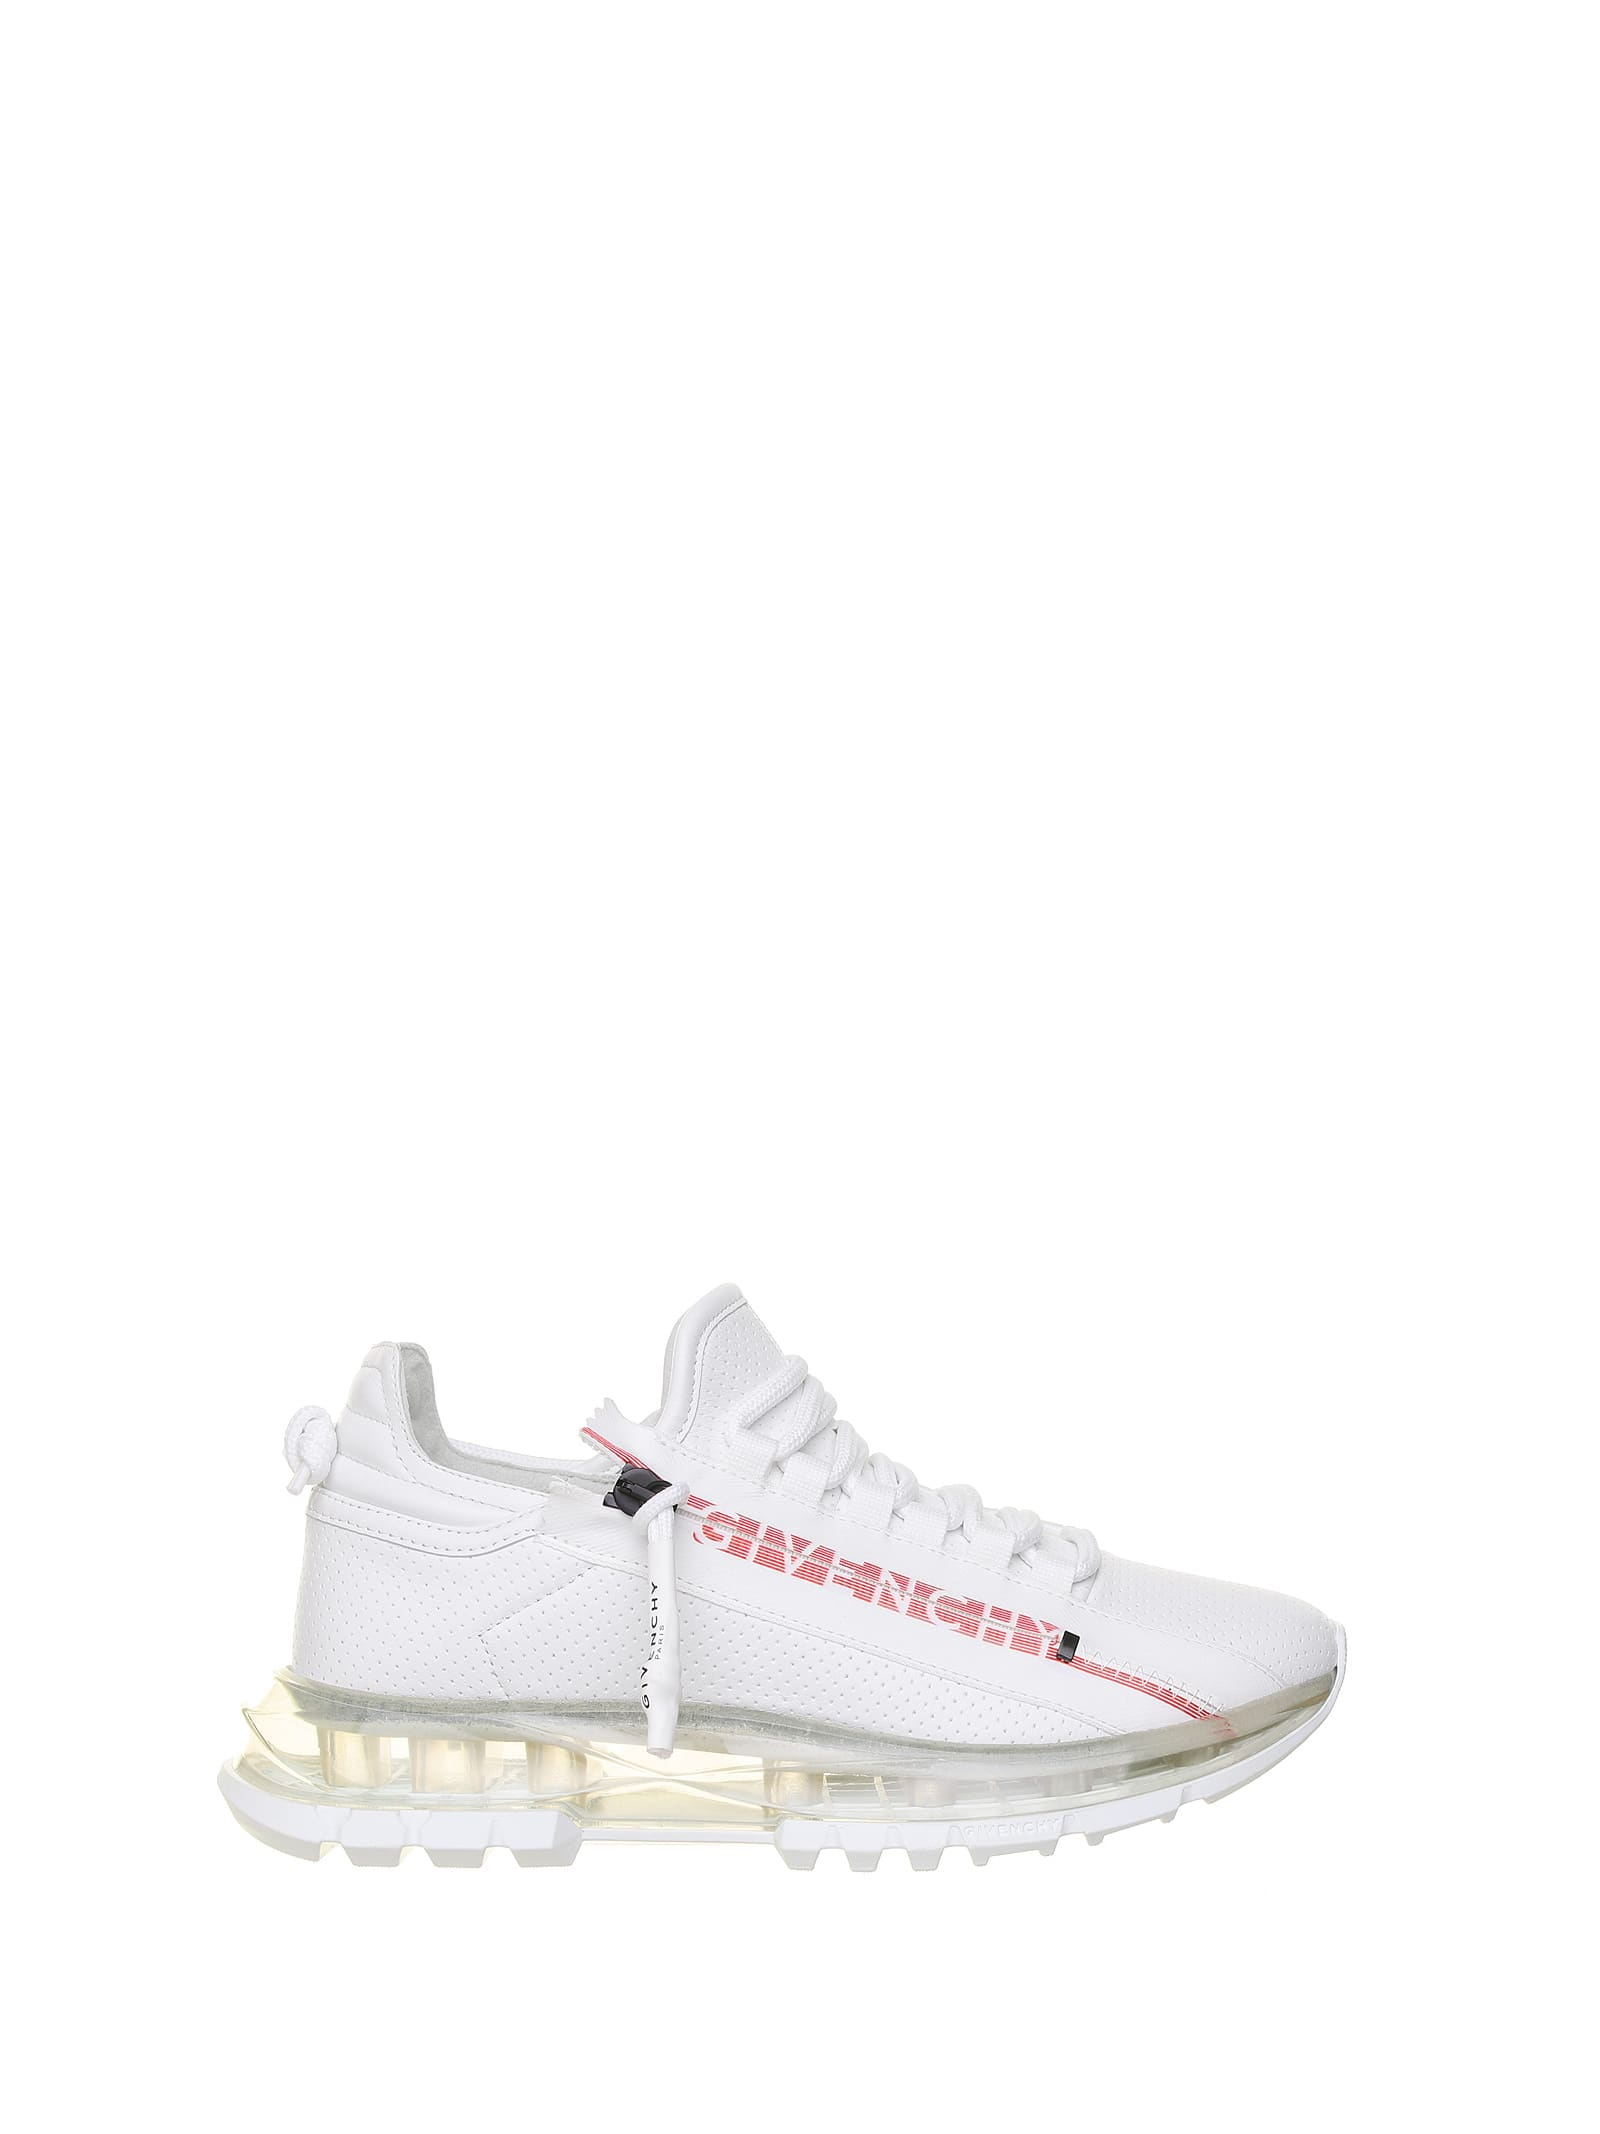 Givenchy Givenchy Specter Sneaker